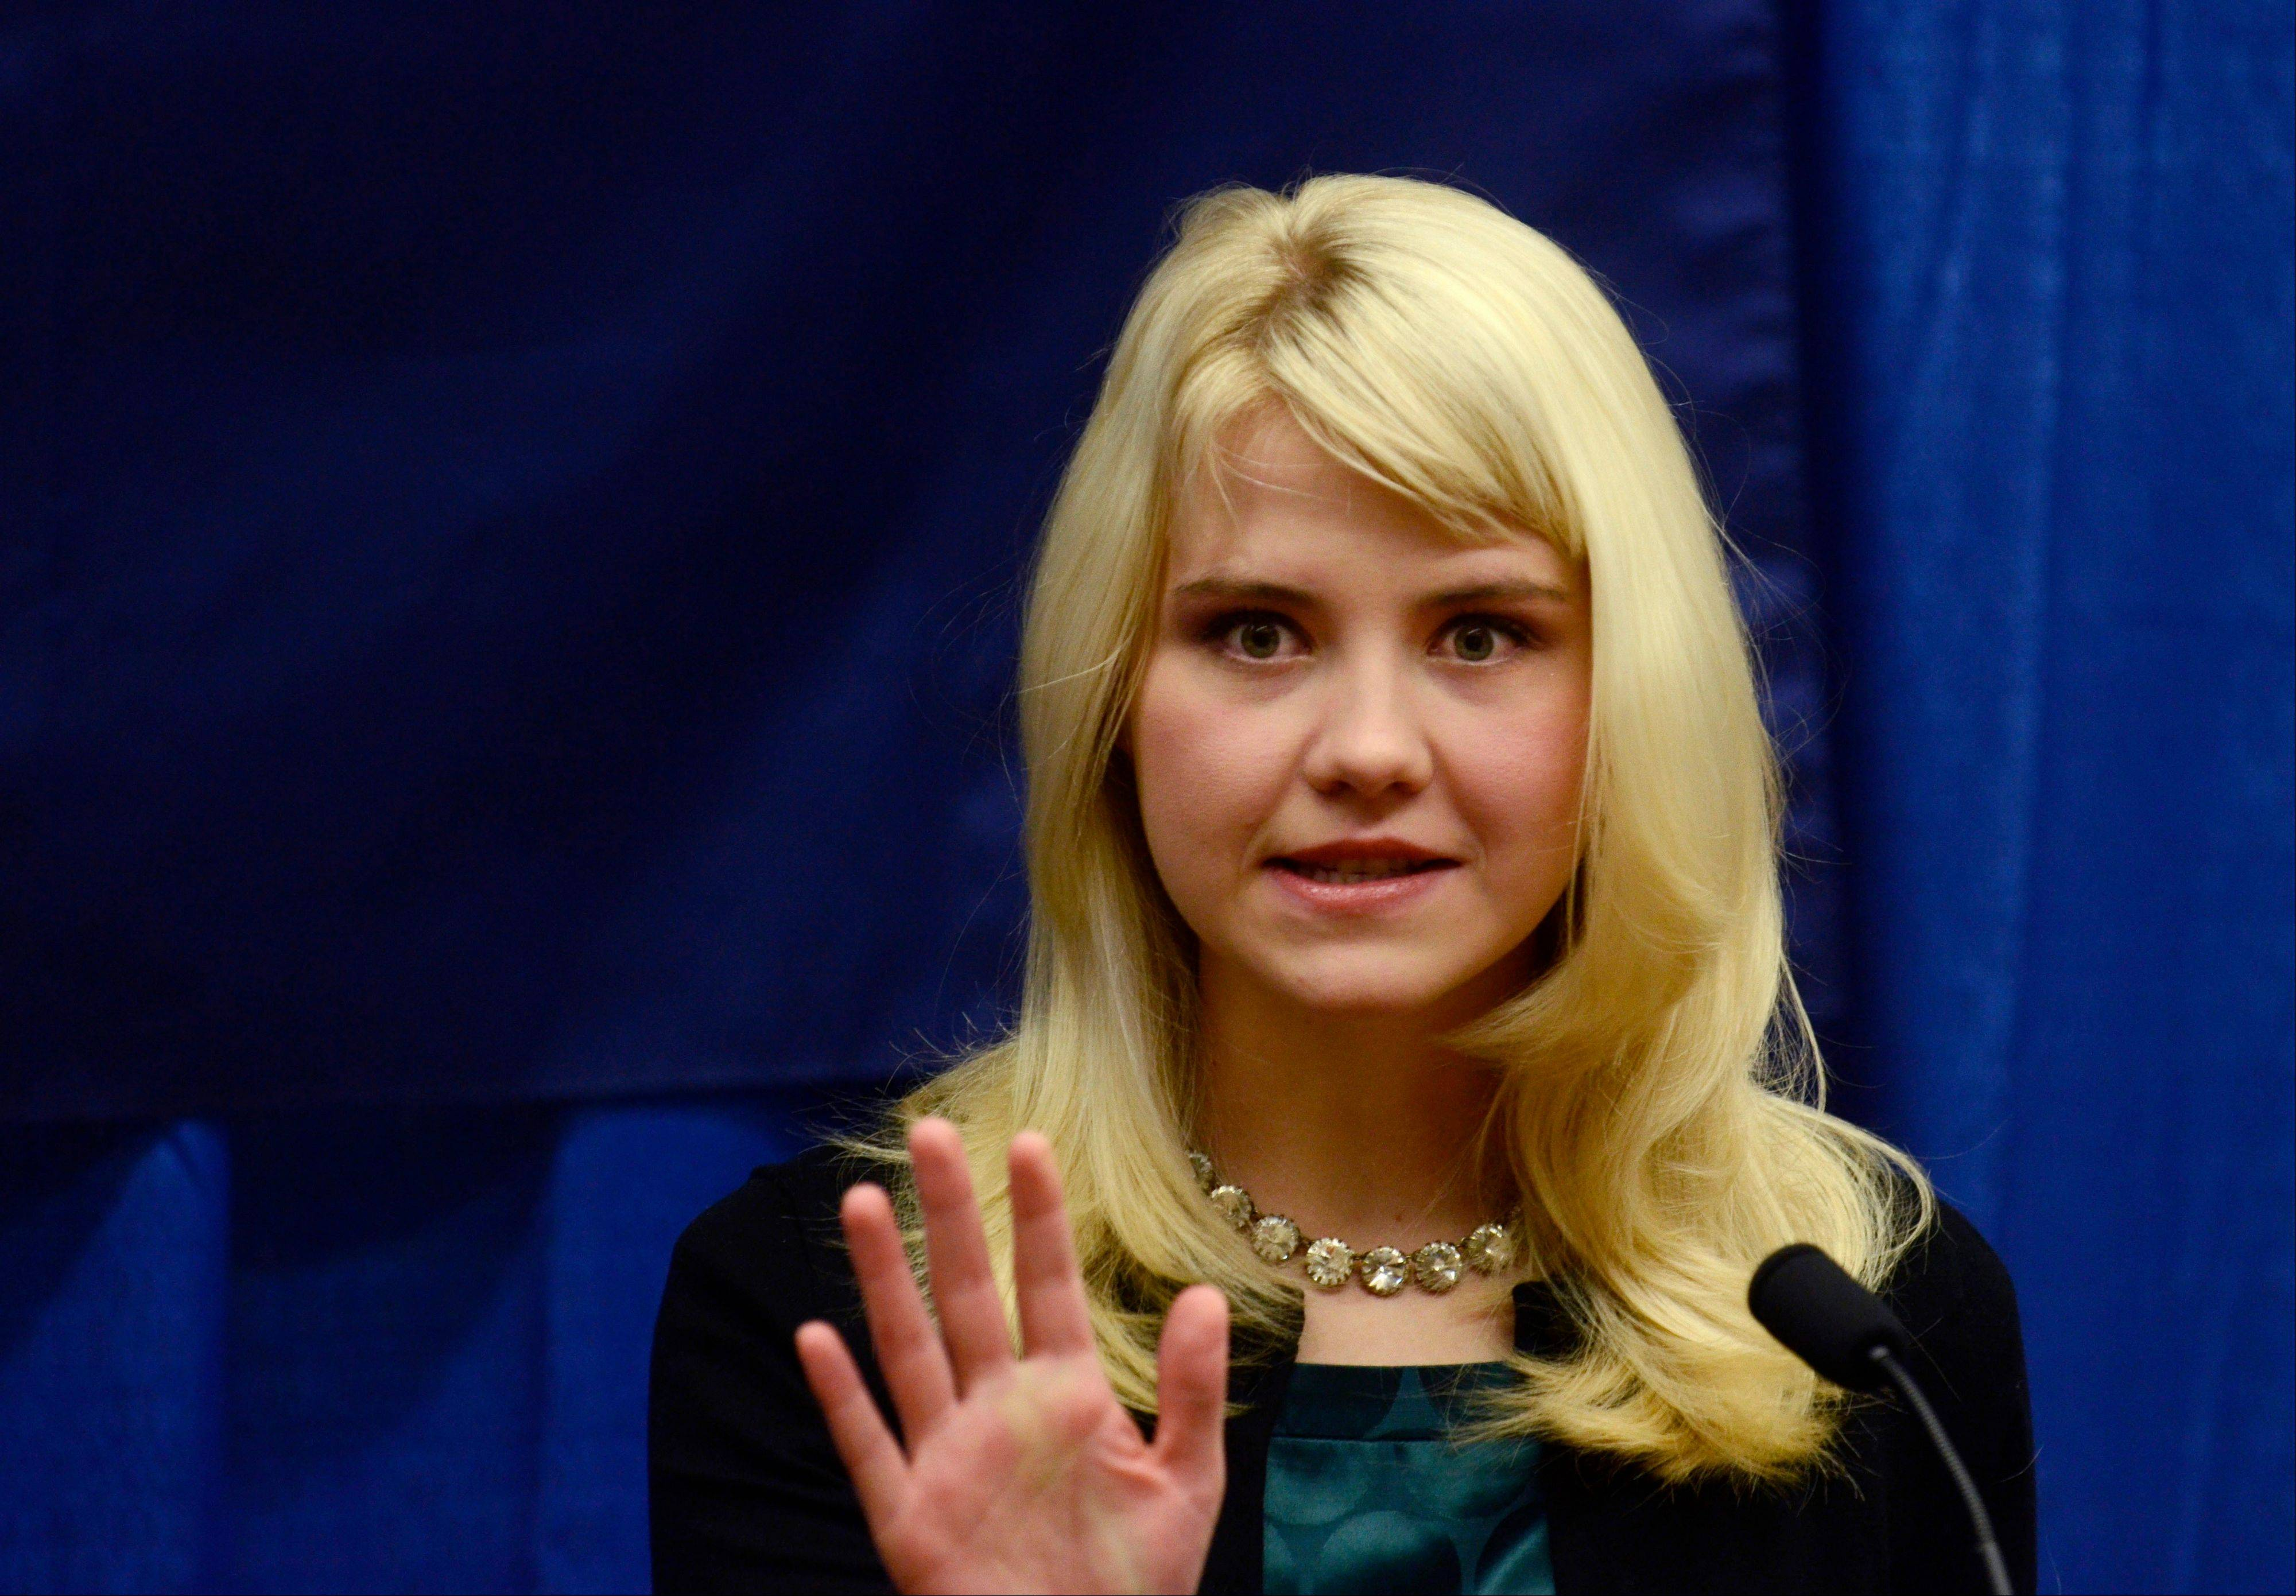 Elizabeth Smart was abducted in 2002 and held prisoner for nine months before being reunited with her family in 2003.